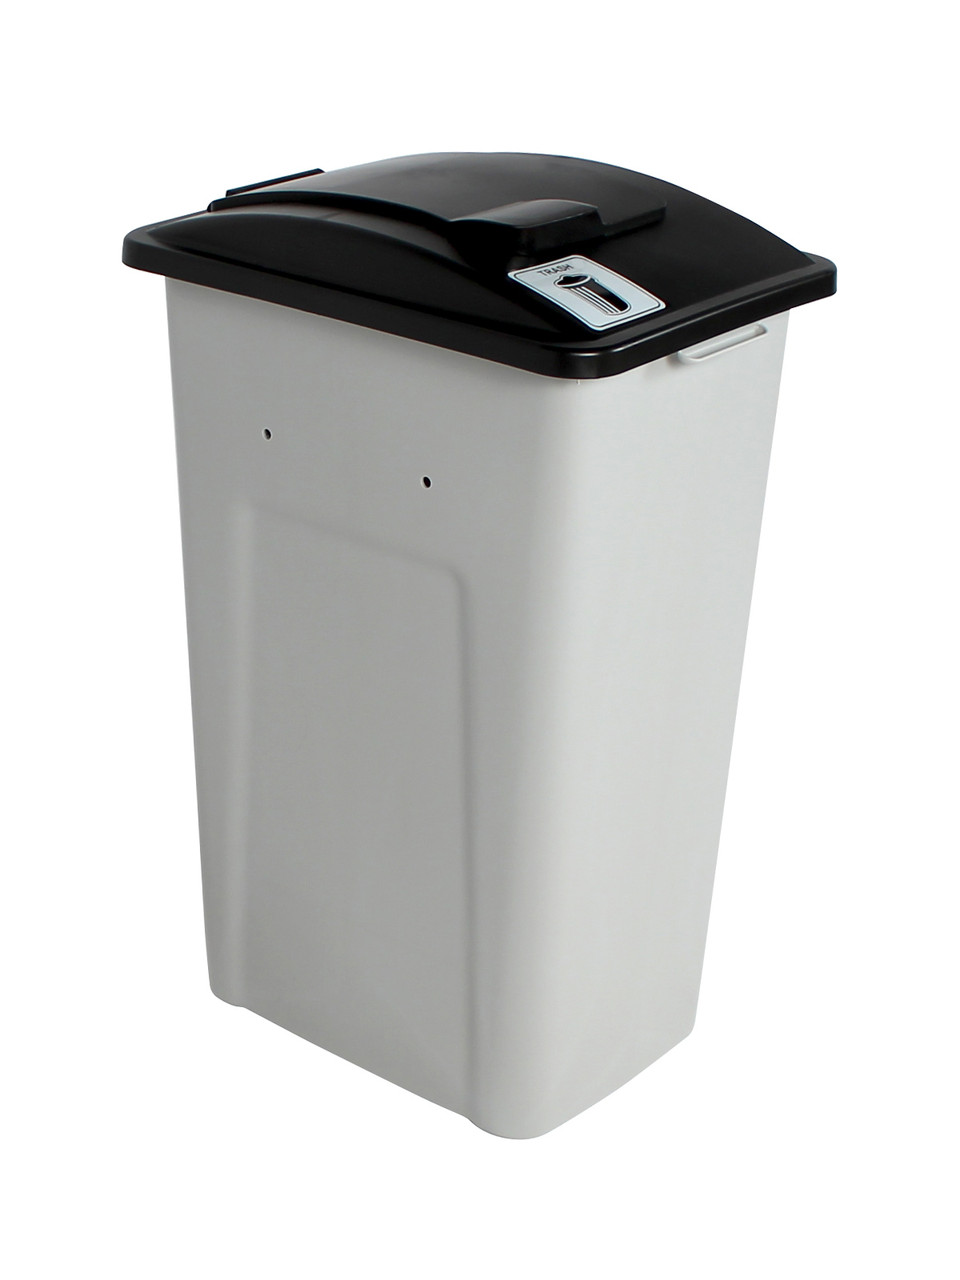 32 Gallon XL Simple Sort Trash Can (Trash, Lift Top)